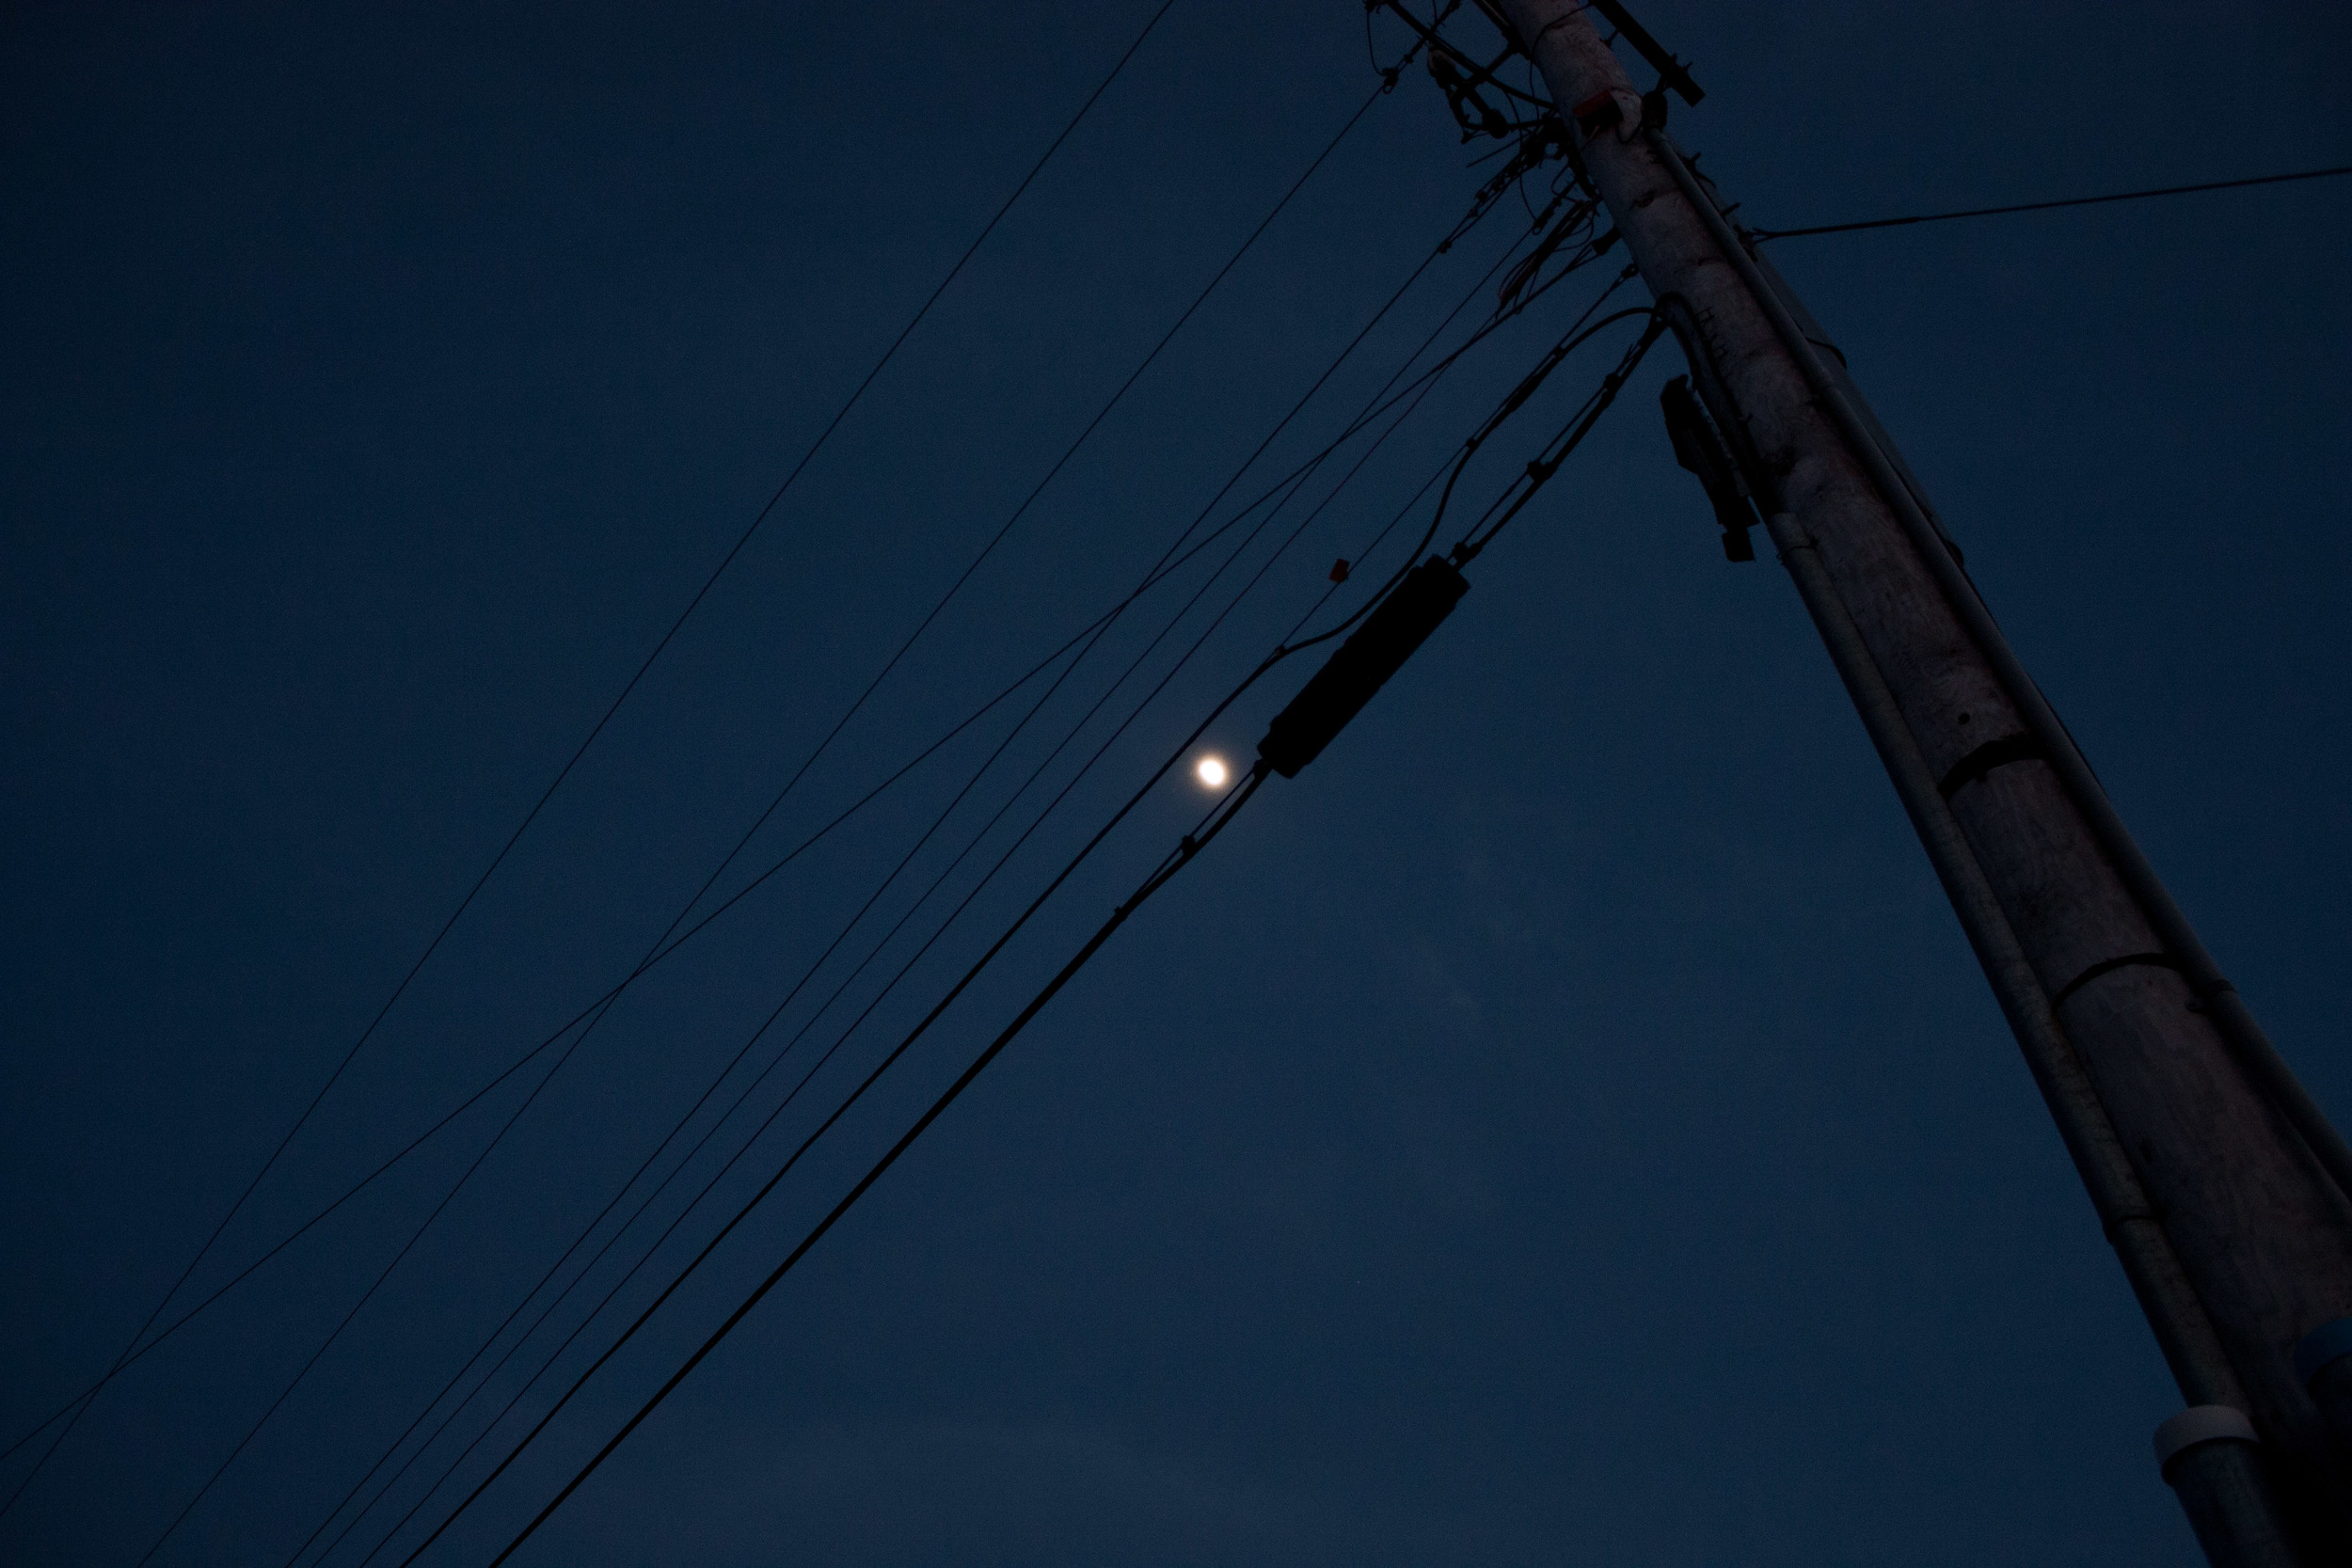 moon telephone pole alue sunglasses